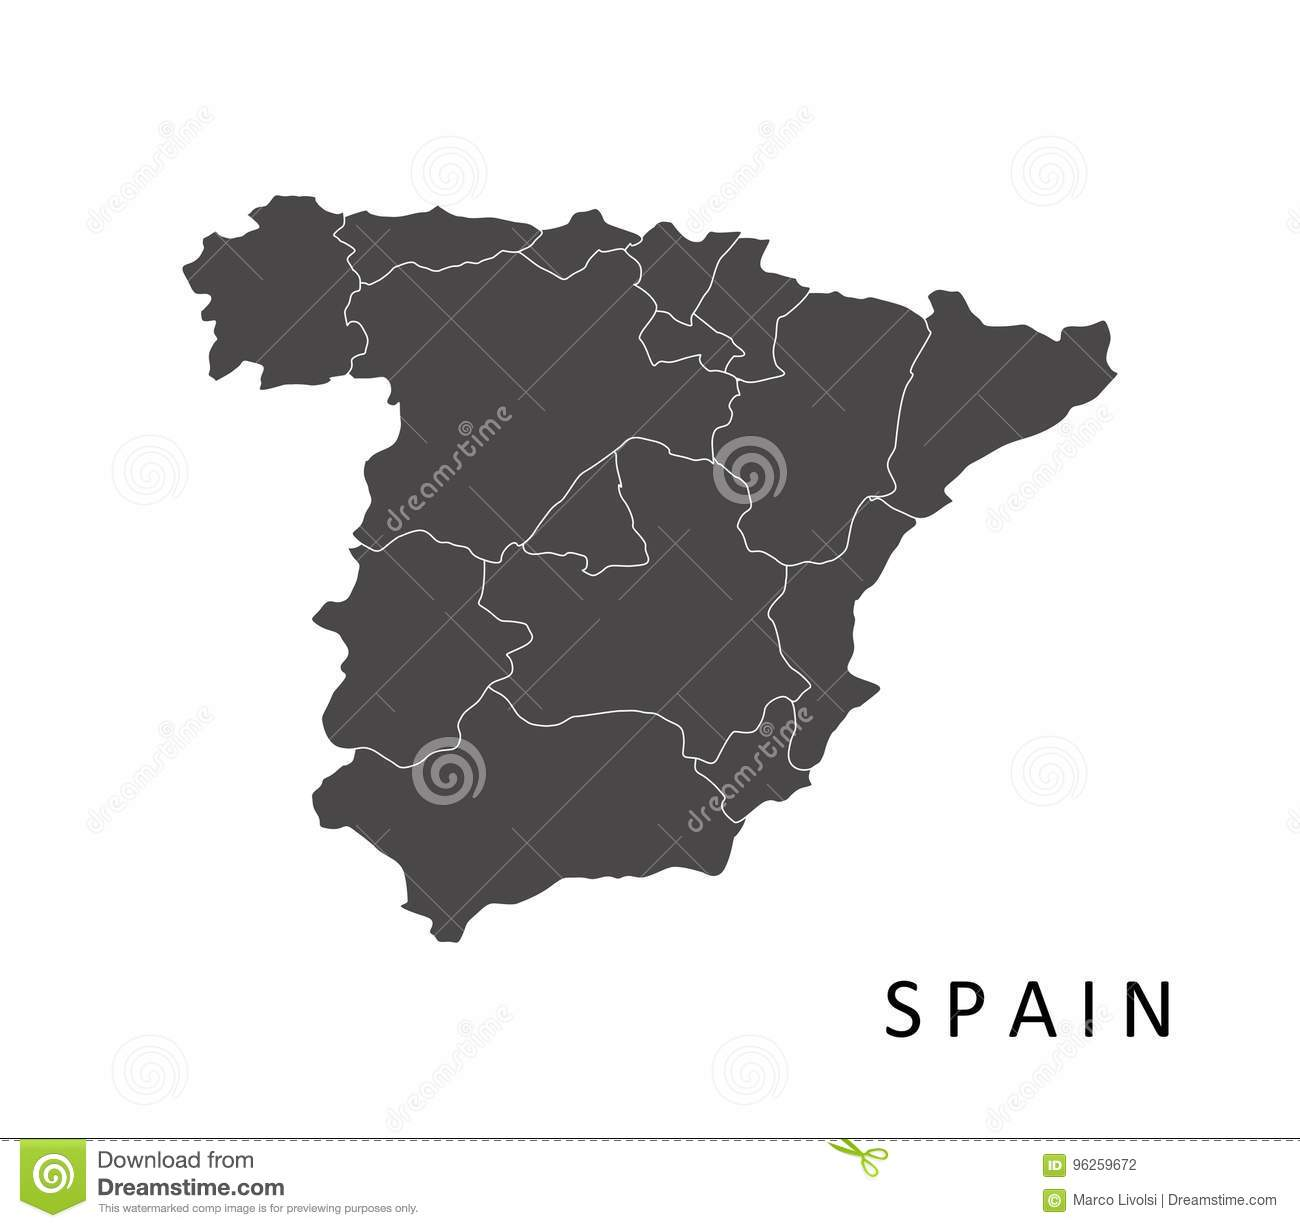 Map spain with regions stock illustration. Illustration of icon ...